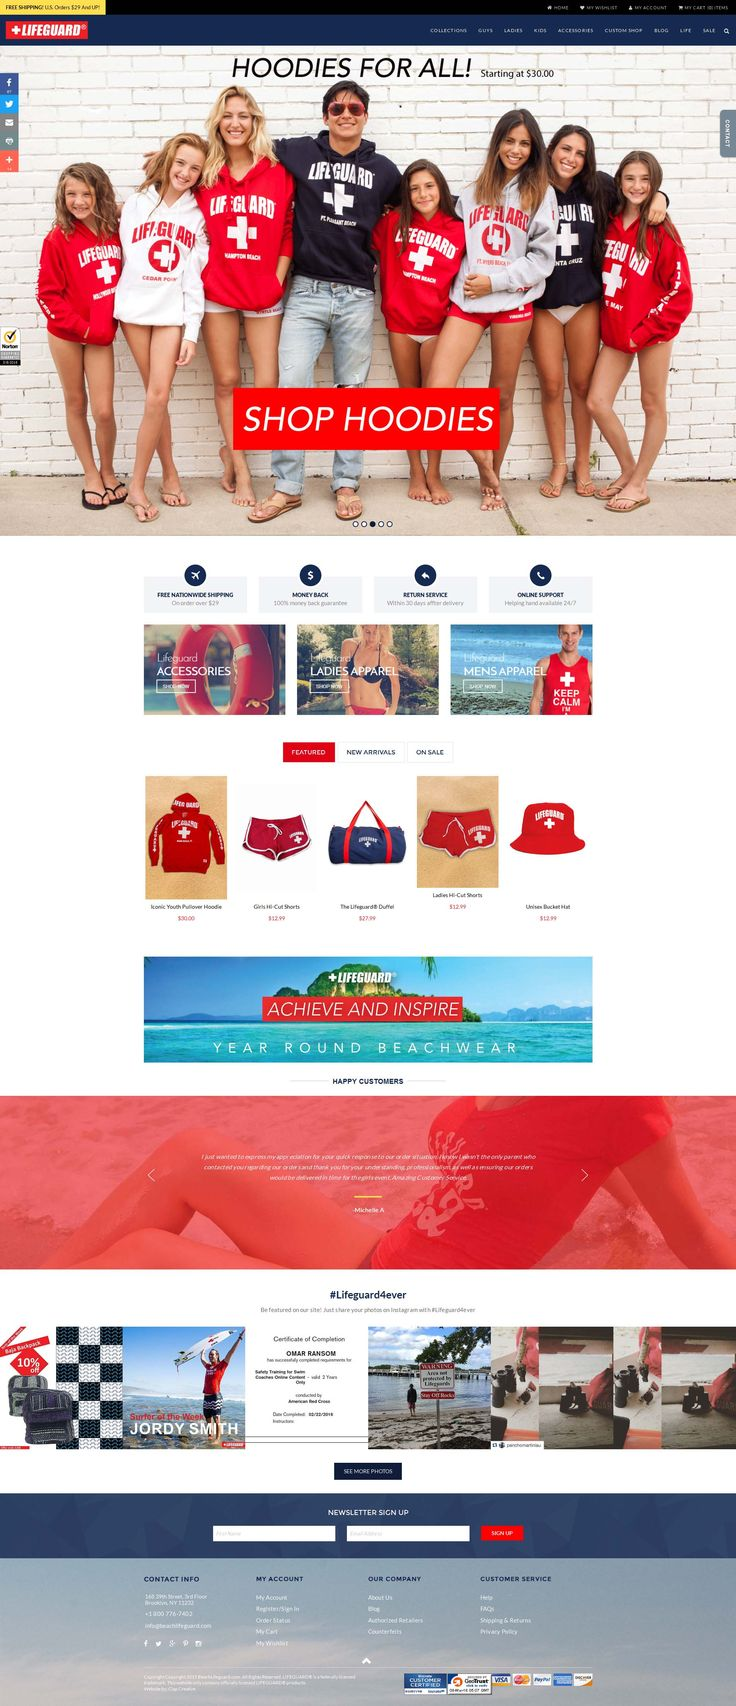 best lifeguard images on pinterest lifeguard digital watch and